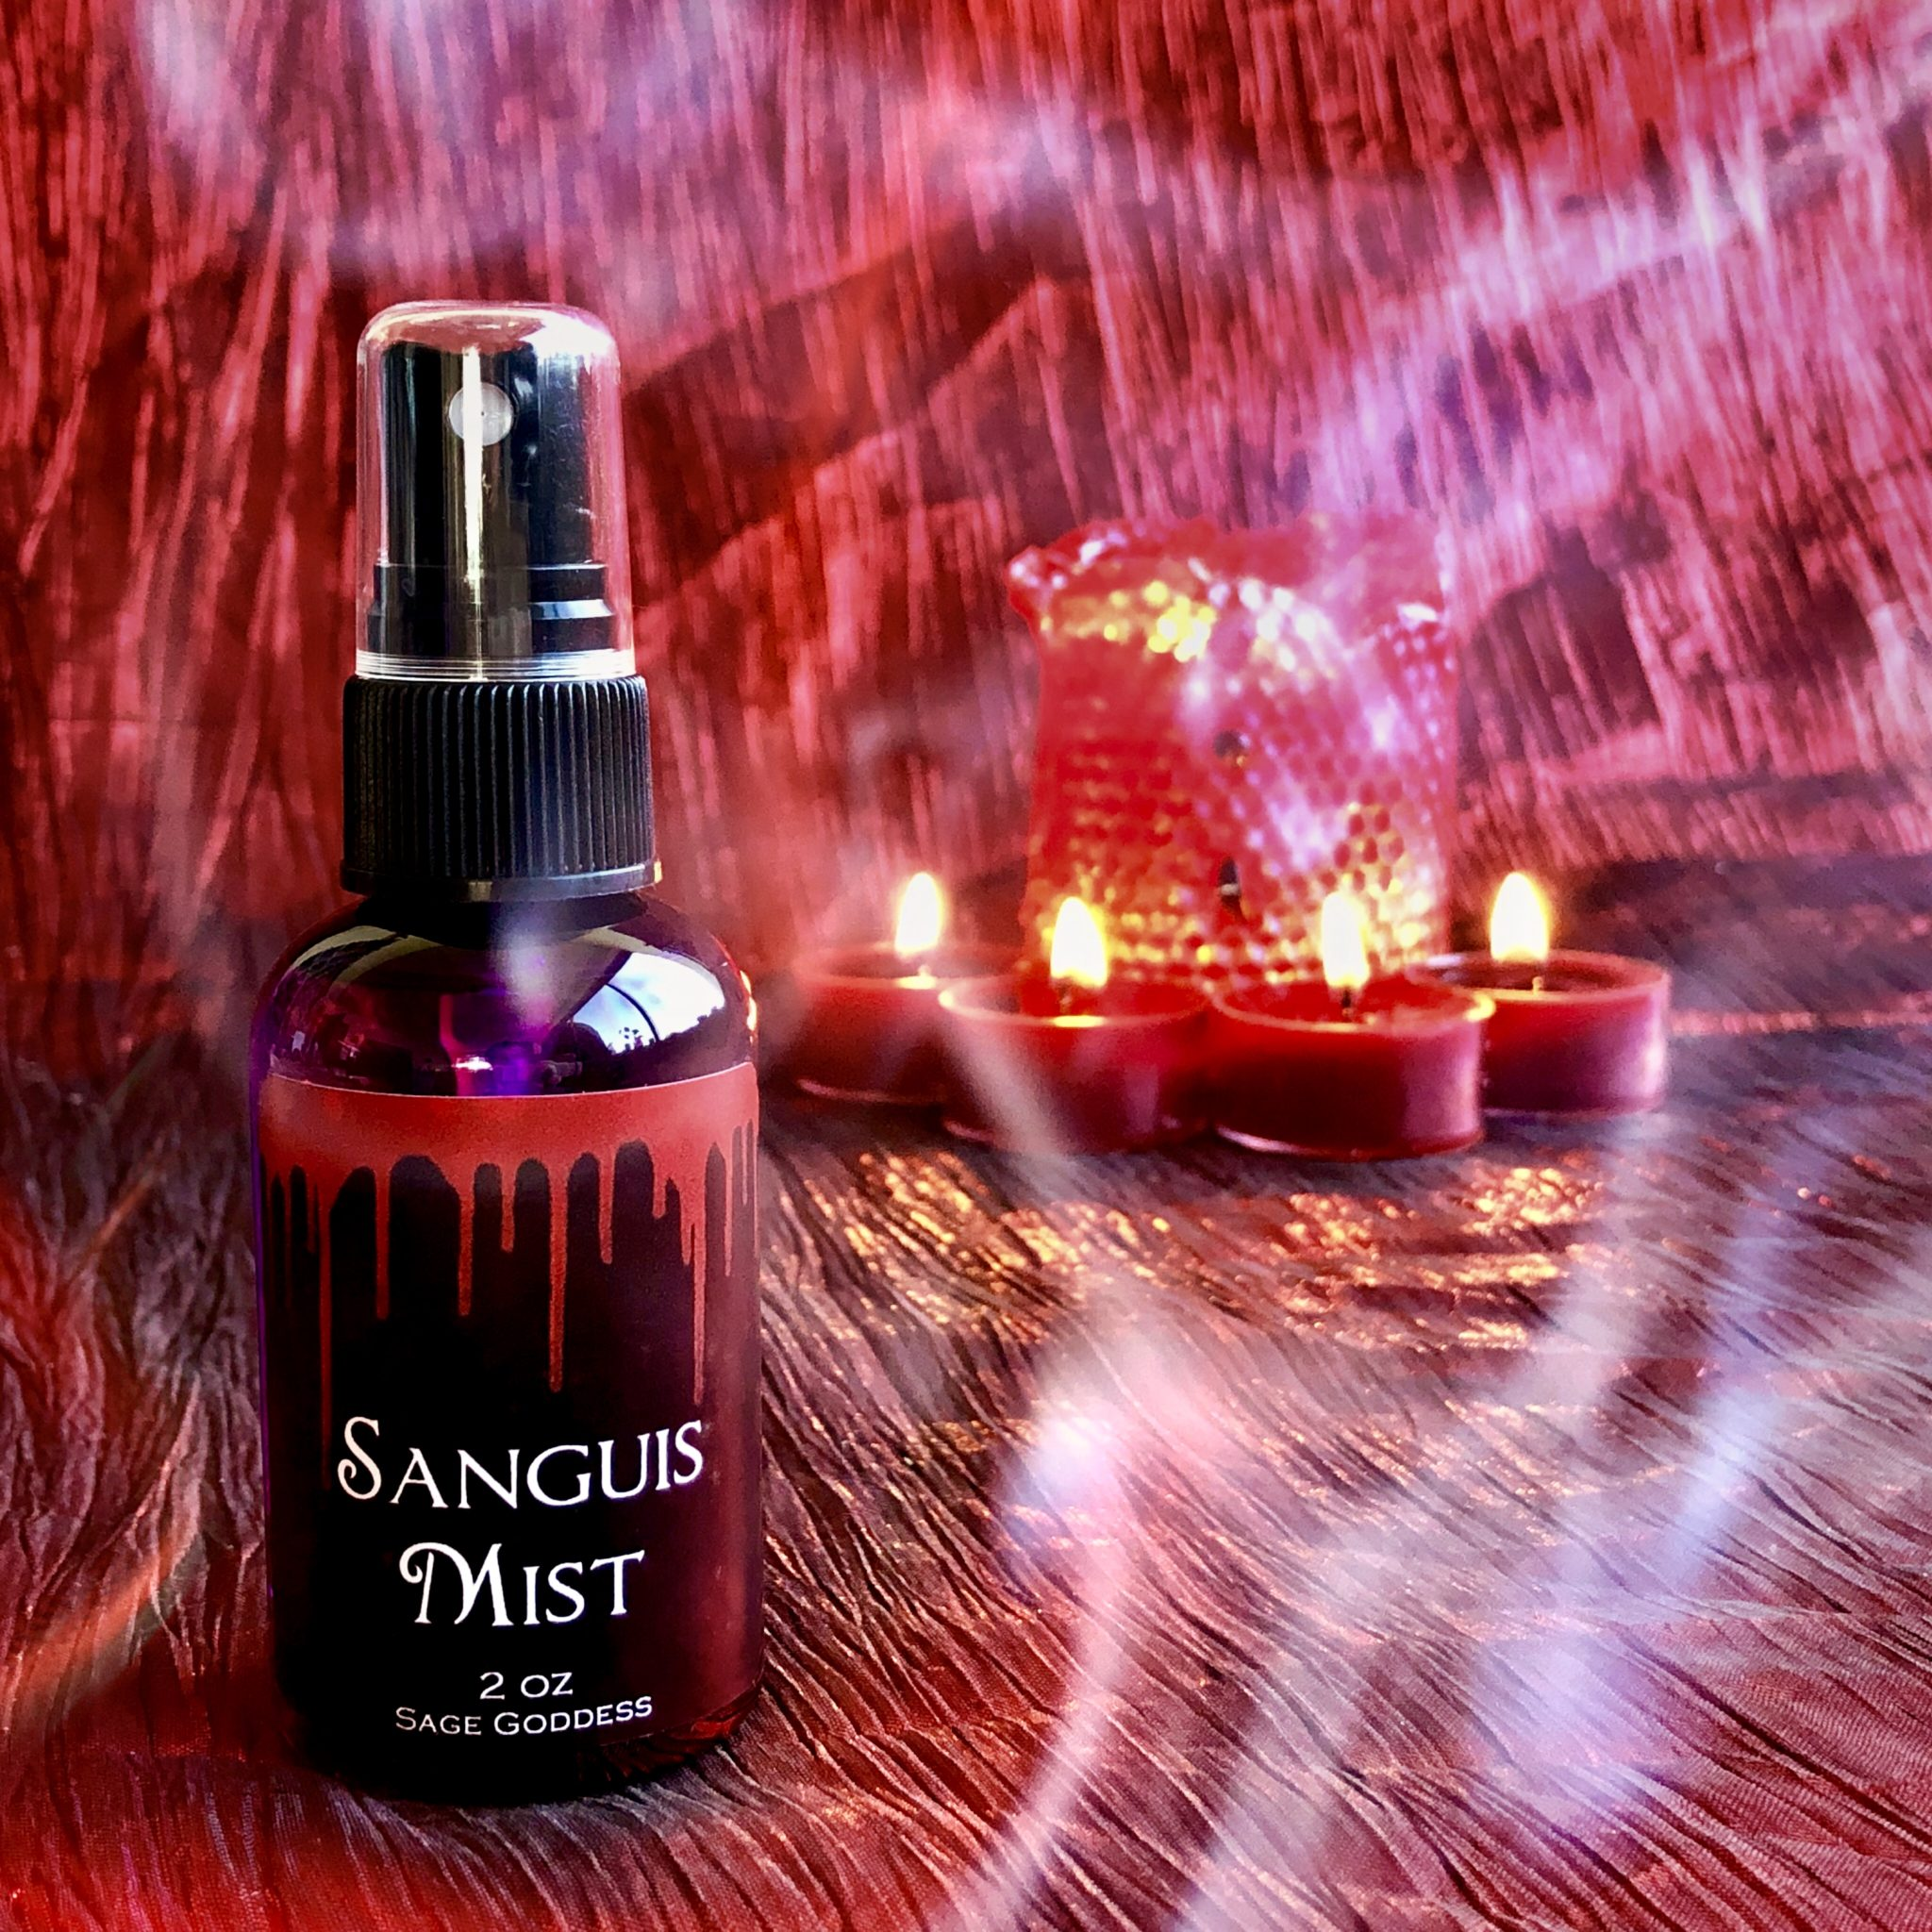 07b6af2bcb49b Sanguis Mist for balance, protection, and grounding